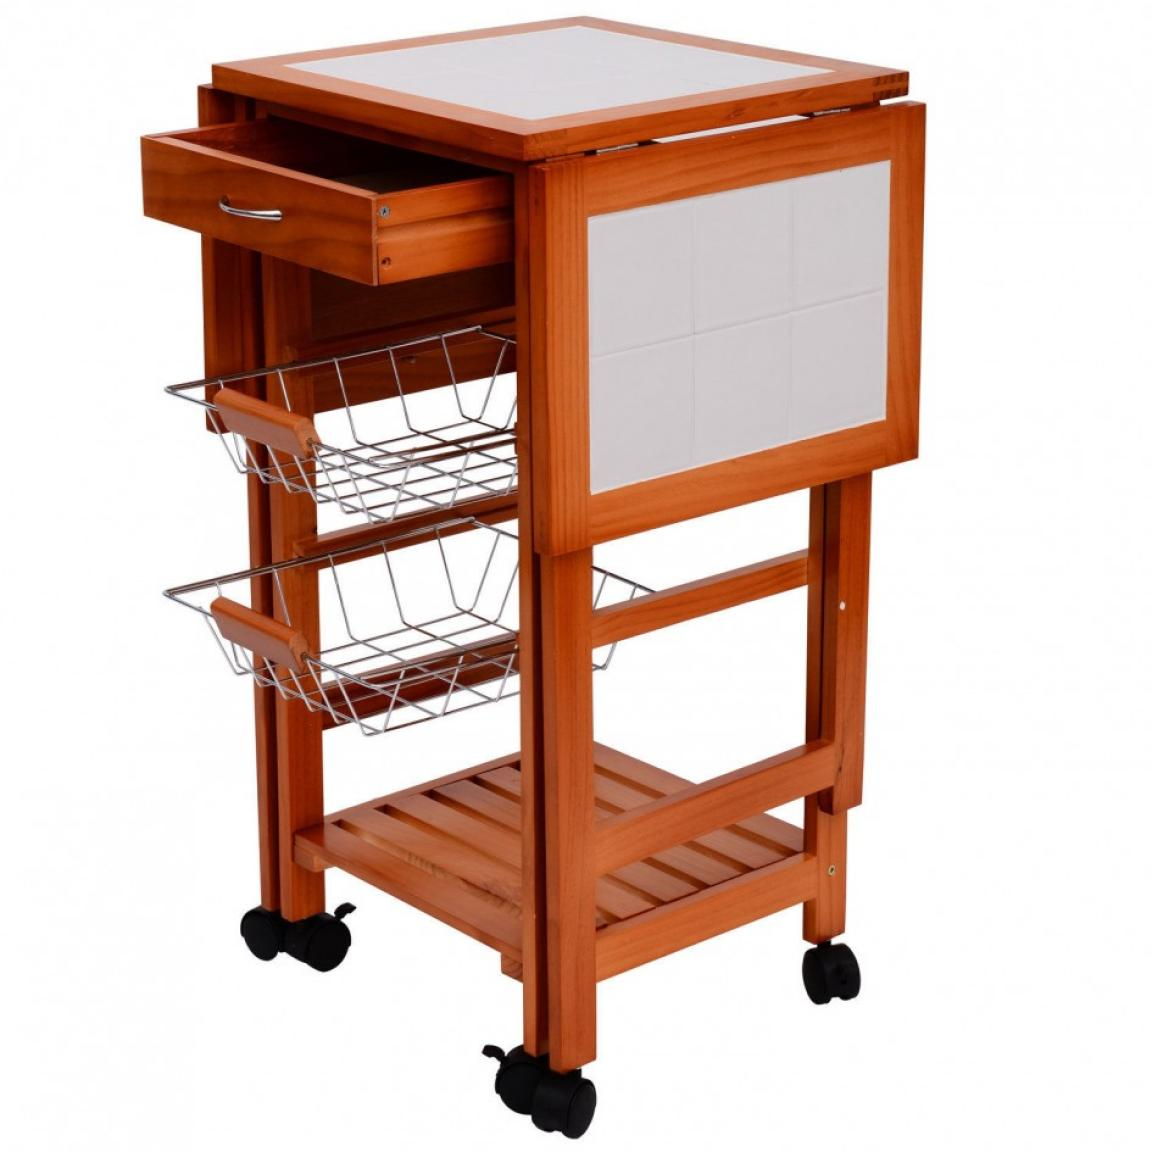 small kitchen island cart with drawers – Home Inspiring